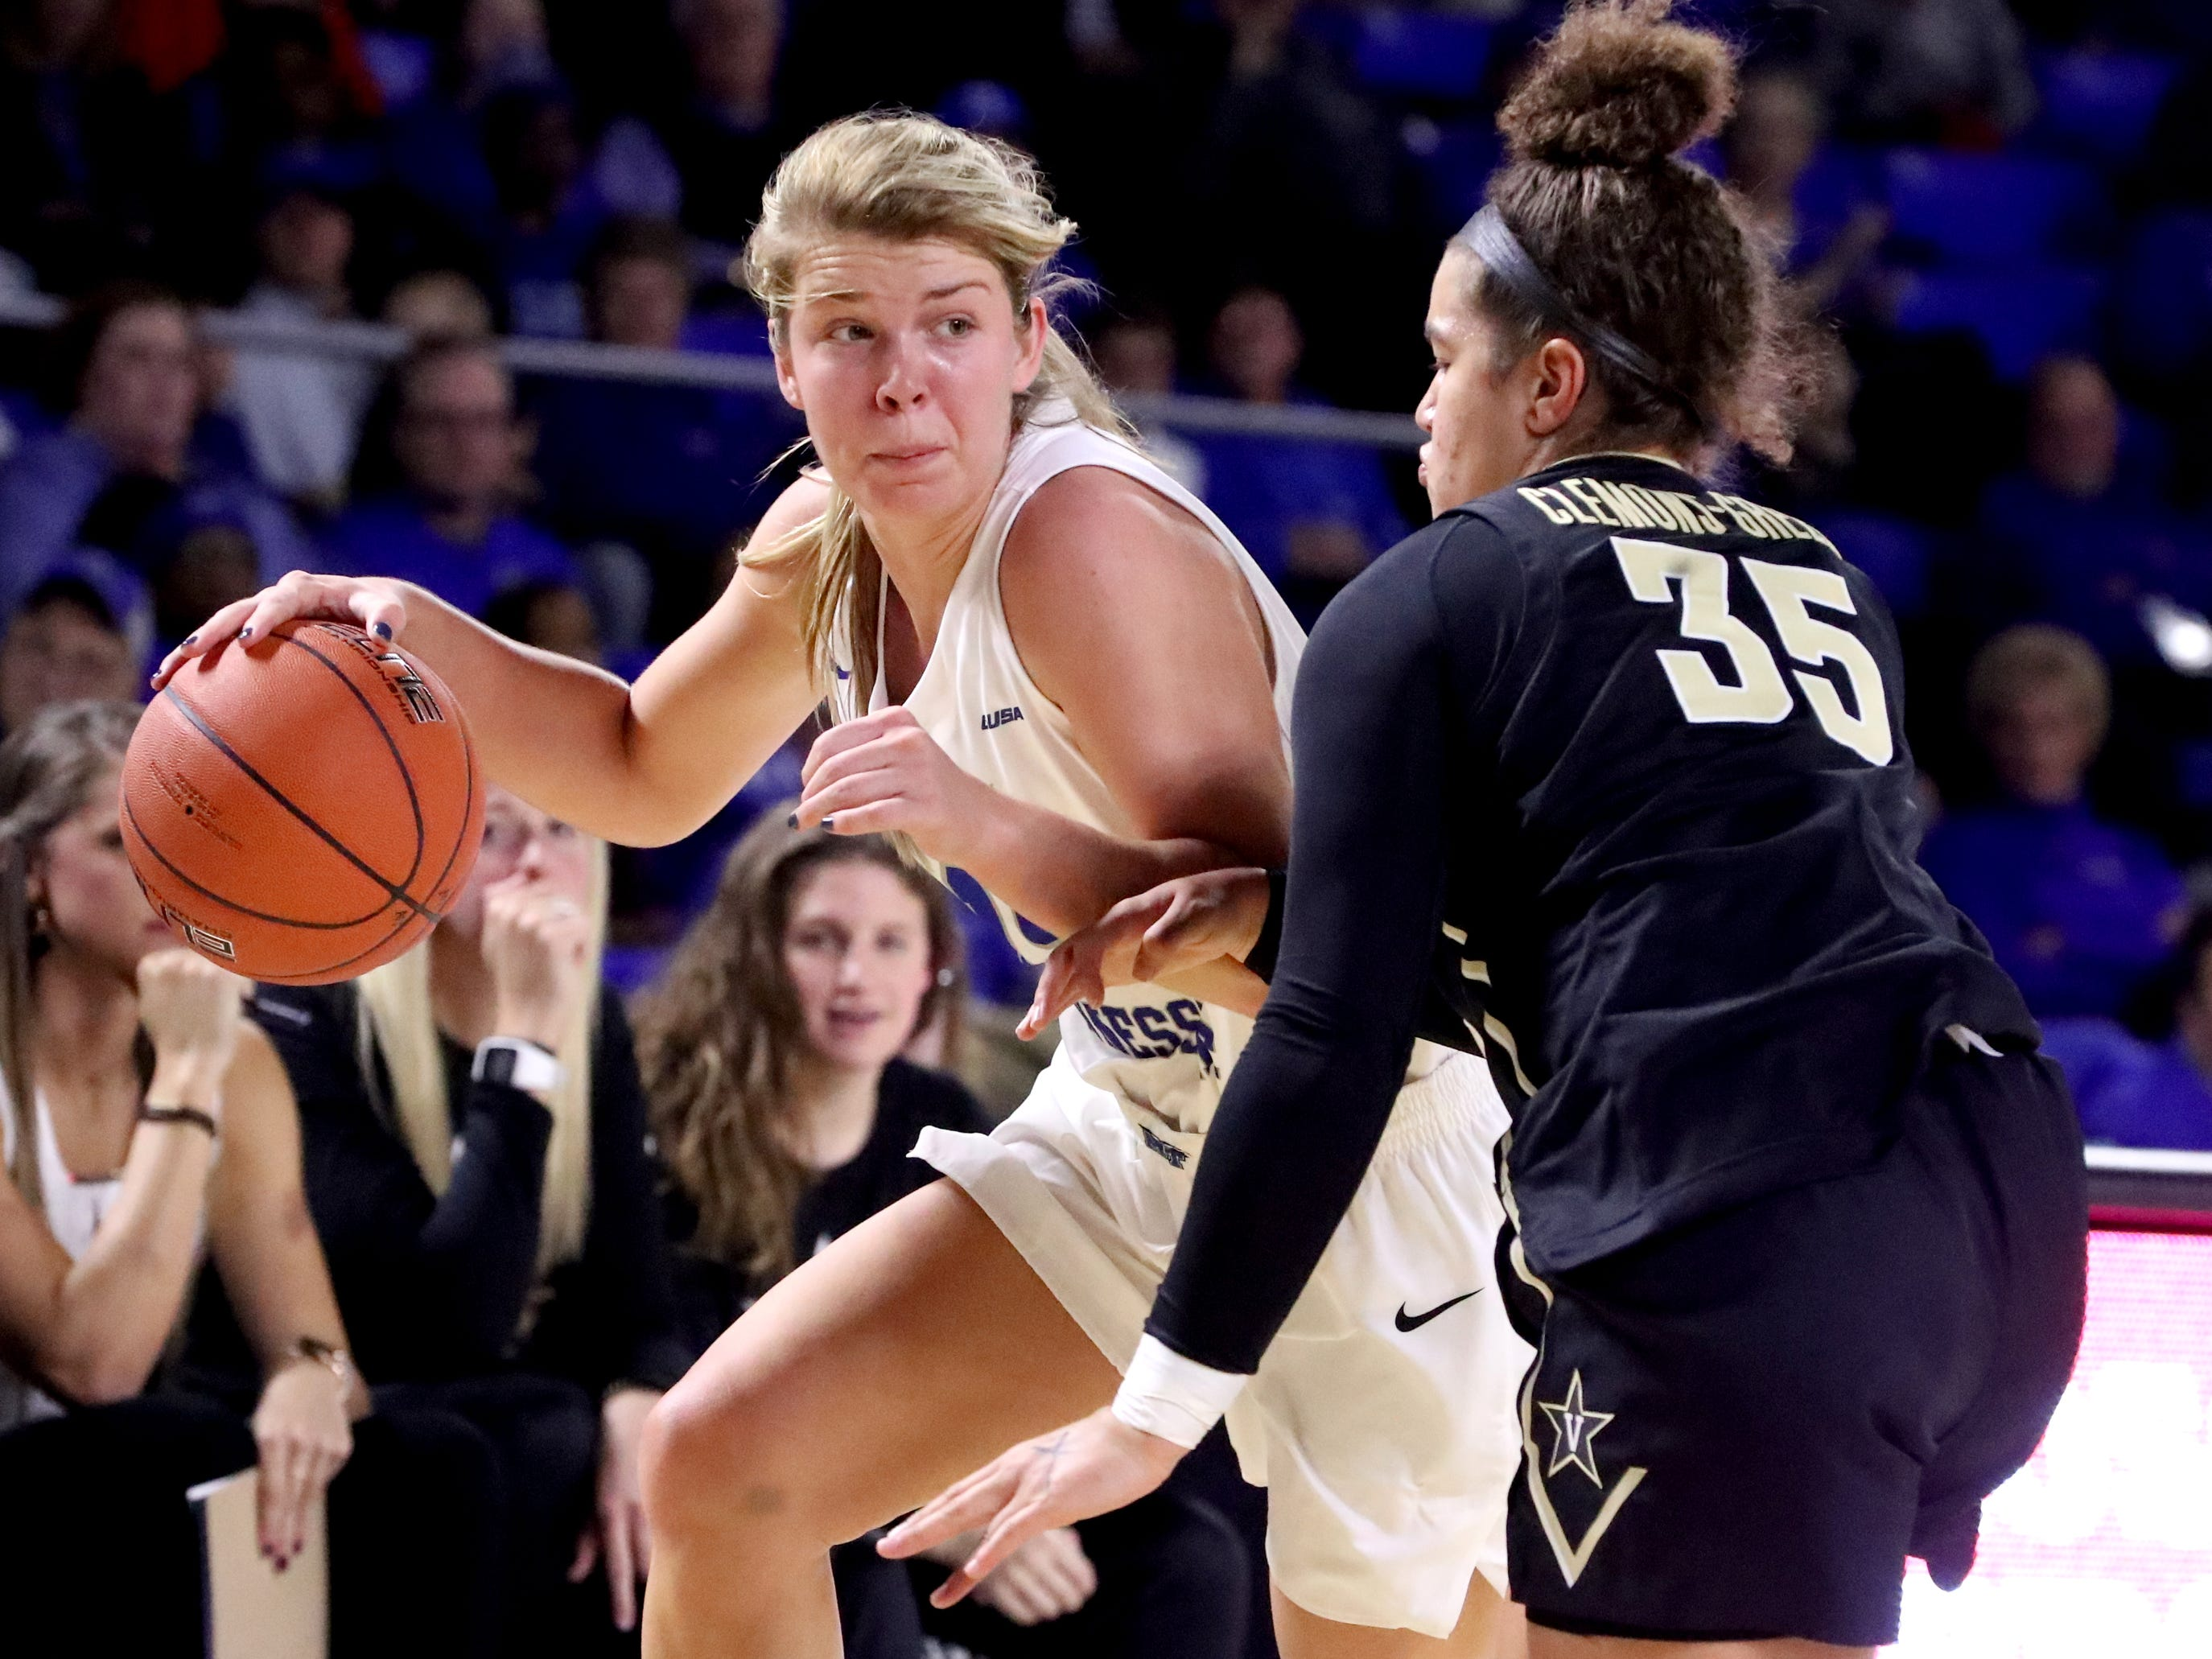 MTSU's Anna Jones(15) pushes to the basket as Vanderbilt's Kaleigh Clemons-Green (35) guards her during the women's home opening game at MTSU on Friday, Nov. 8, 2018.